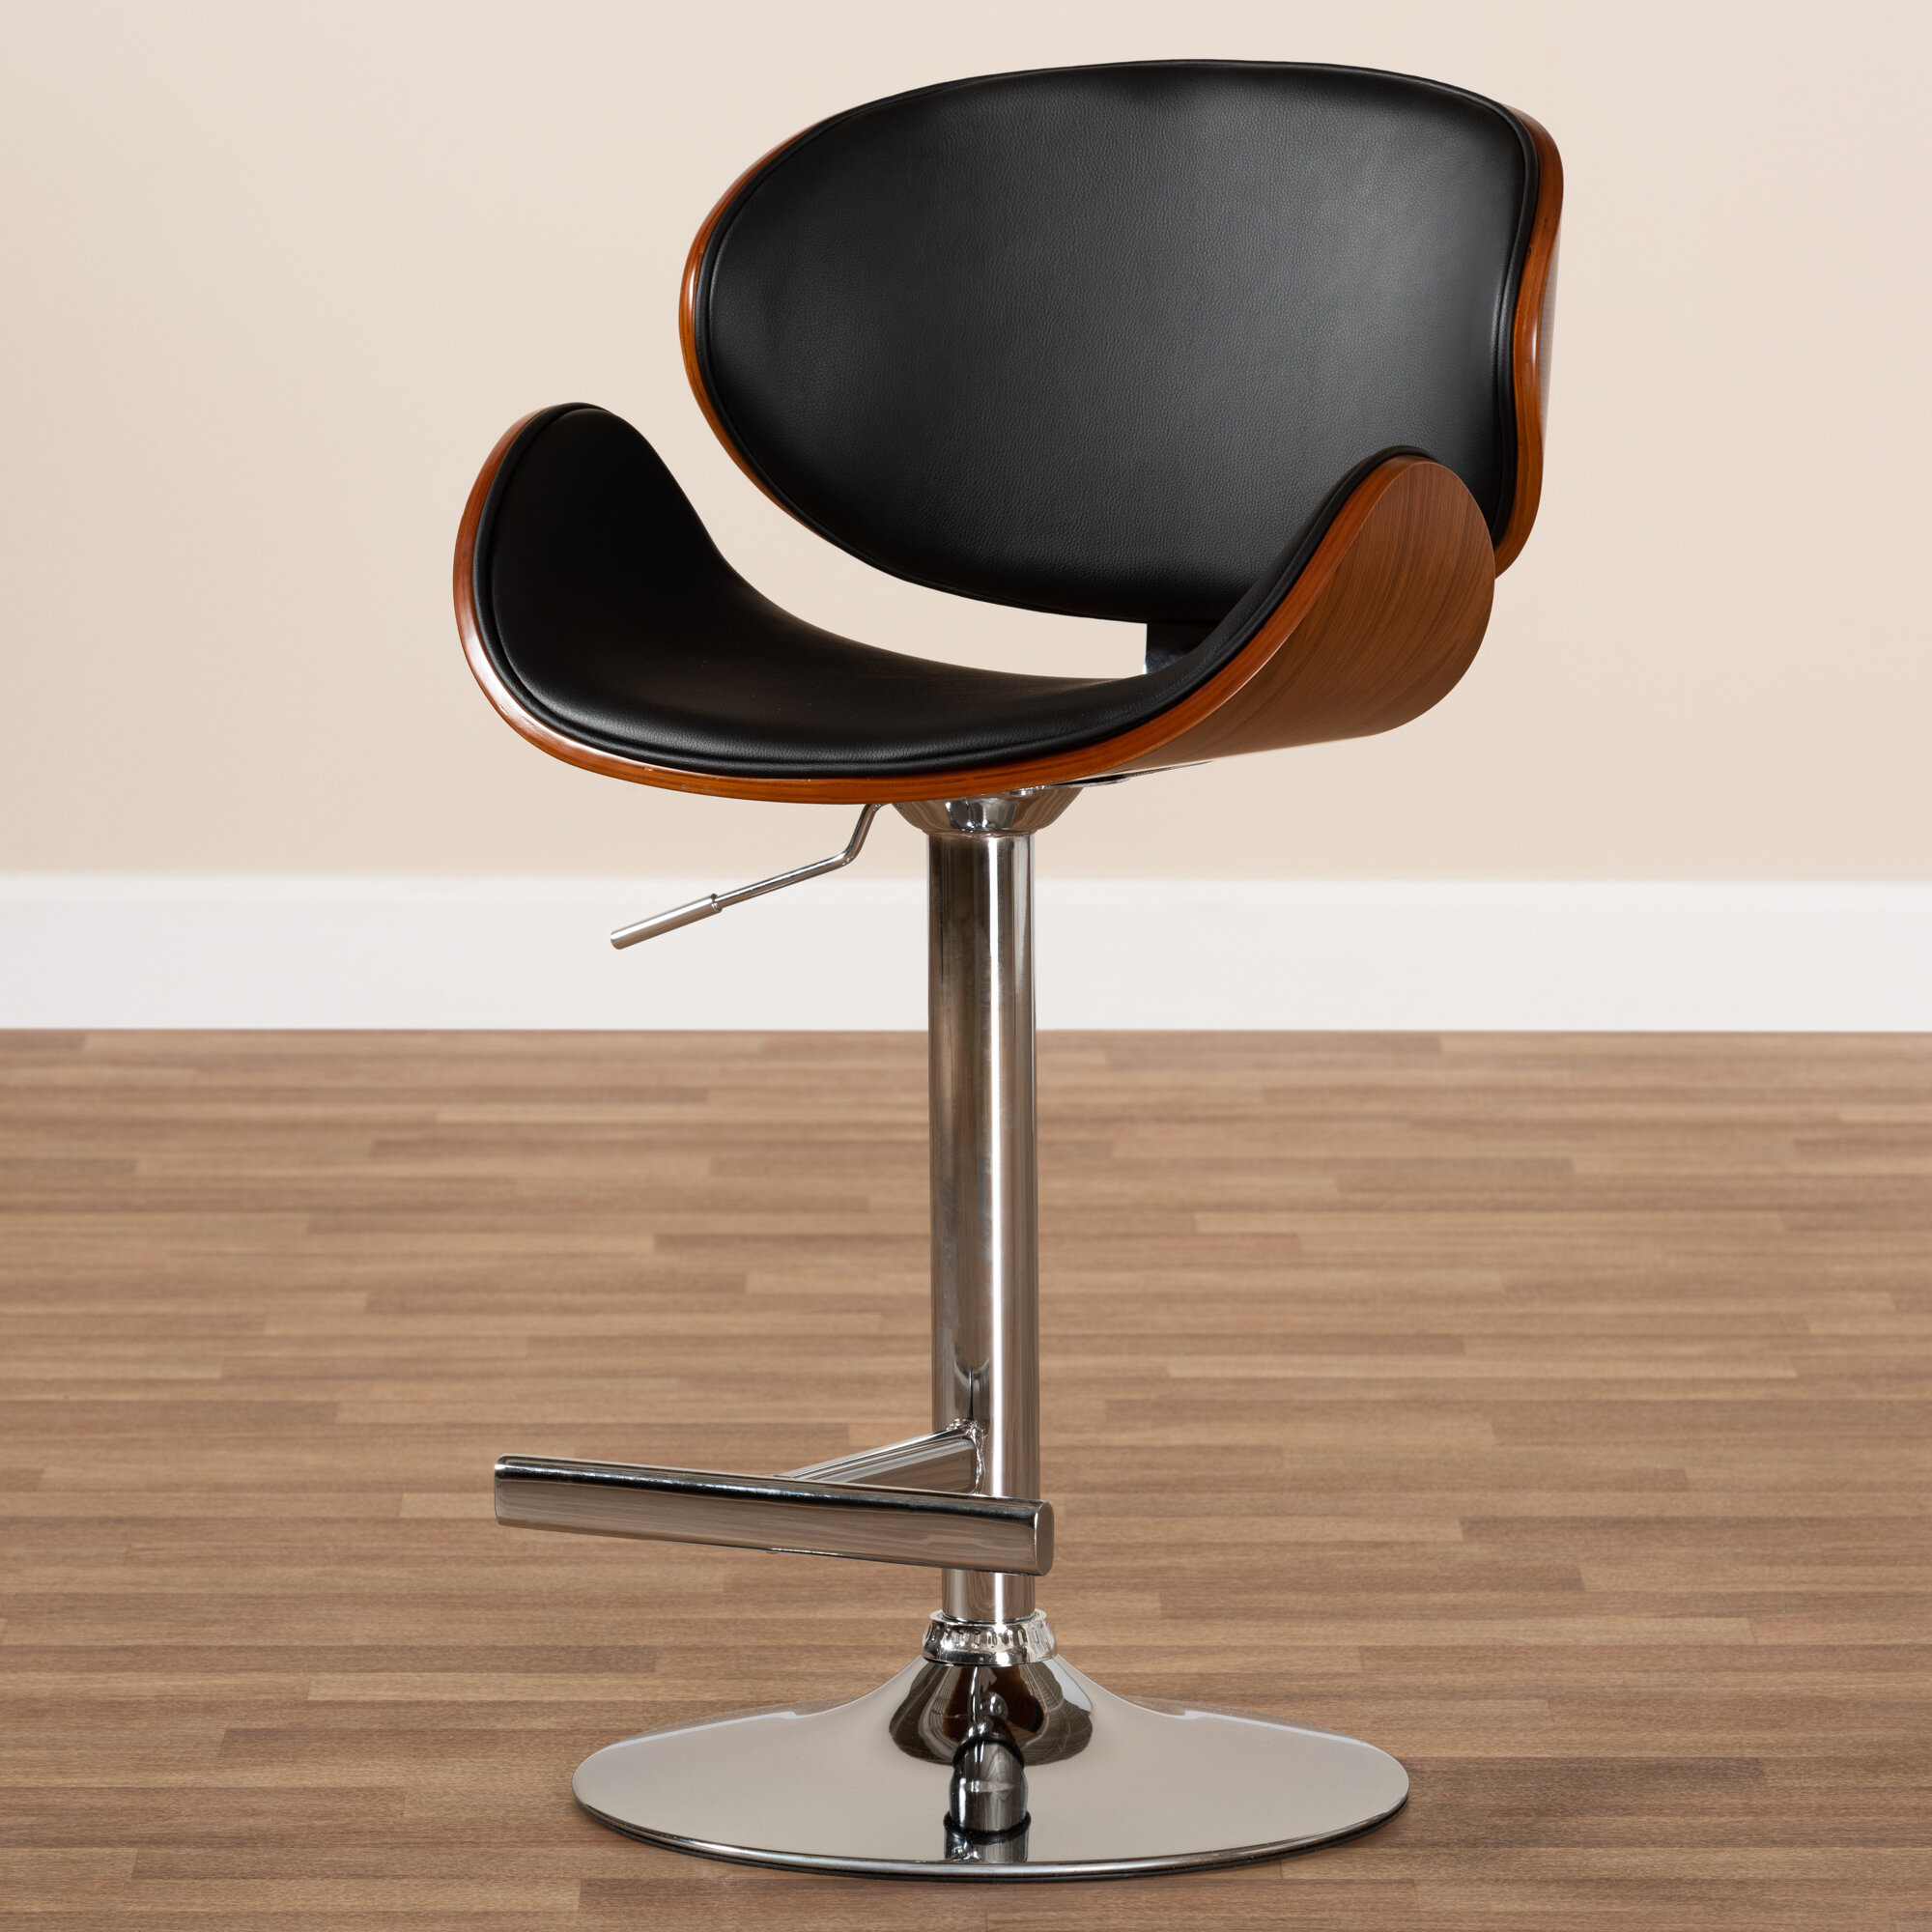 Astonishing Brinkerhoff Adjustable Height Swivel Bar Stool Caraccident5 Cool Chair Designs And Ideas Caraccident5Info